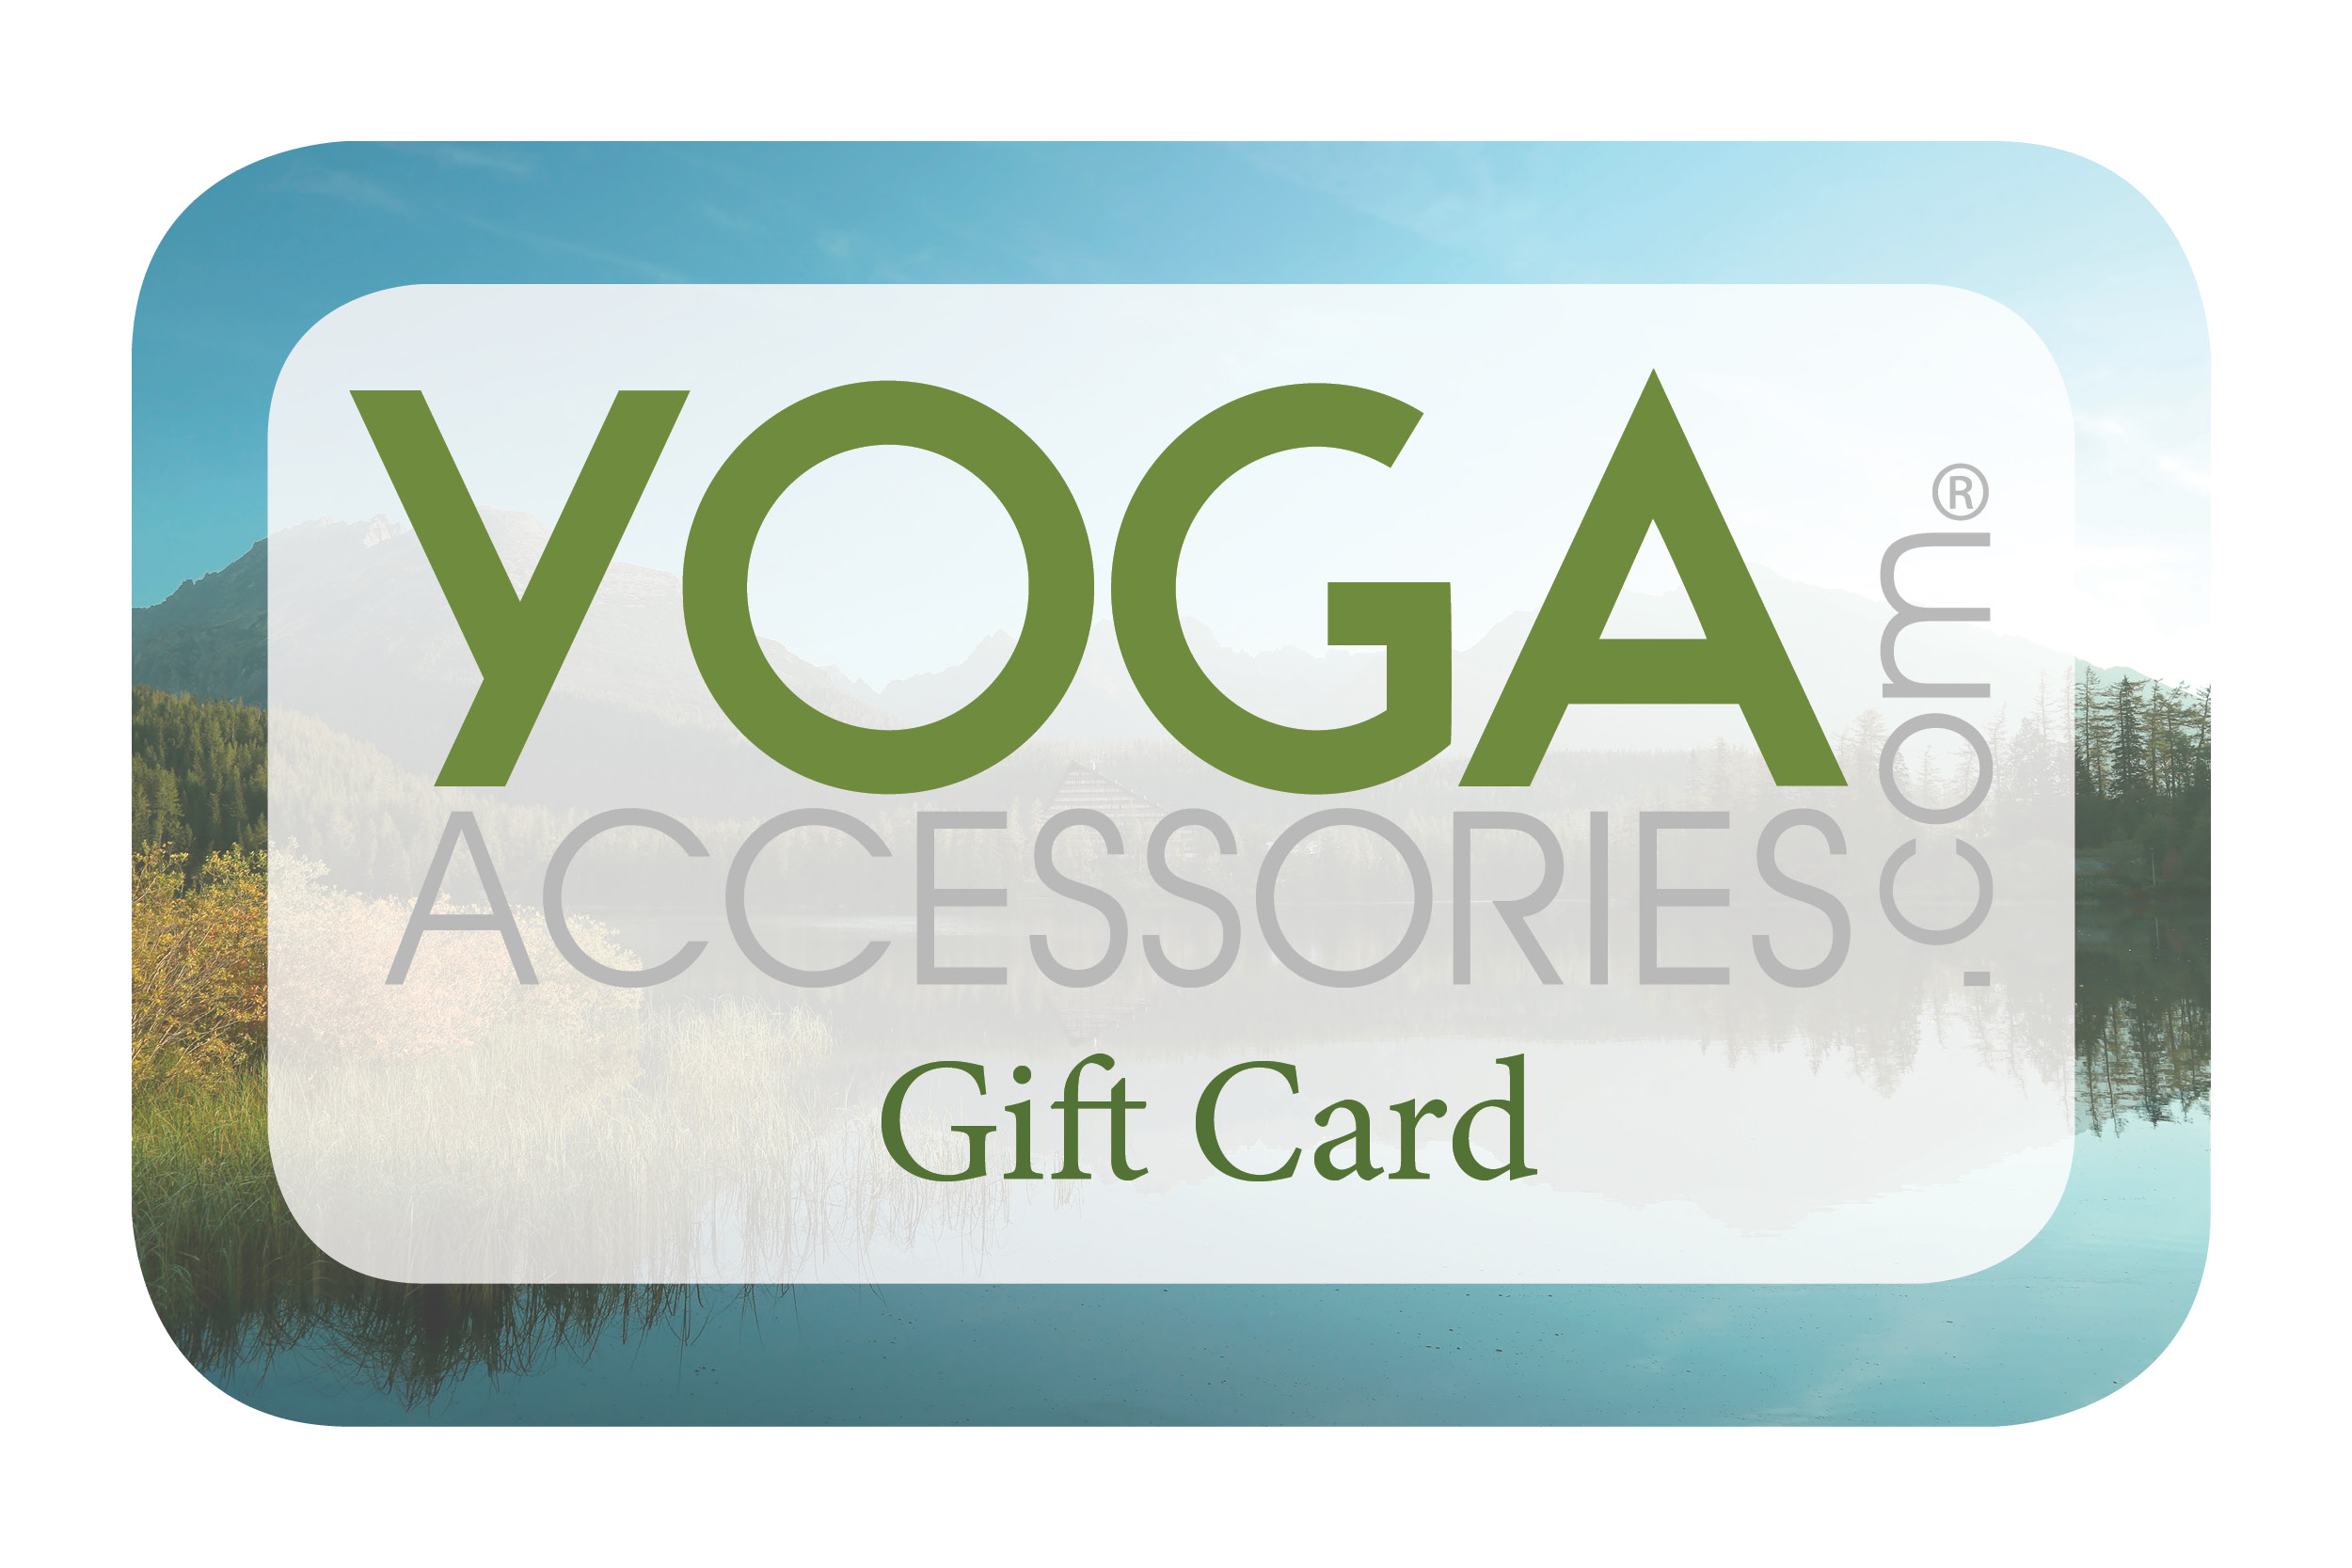 Online Gift Card For YOGA Accessories Zoom